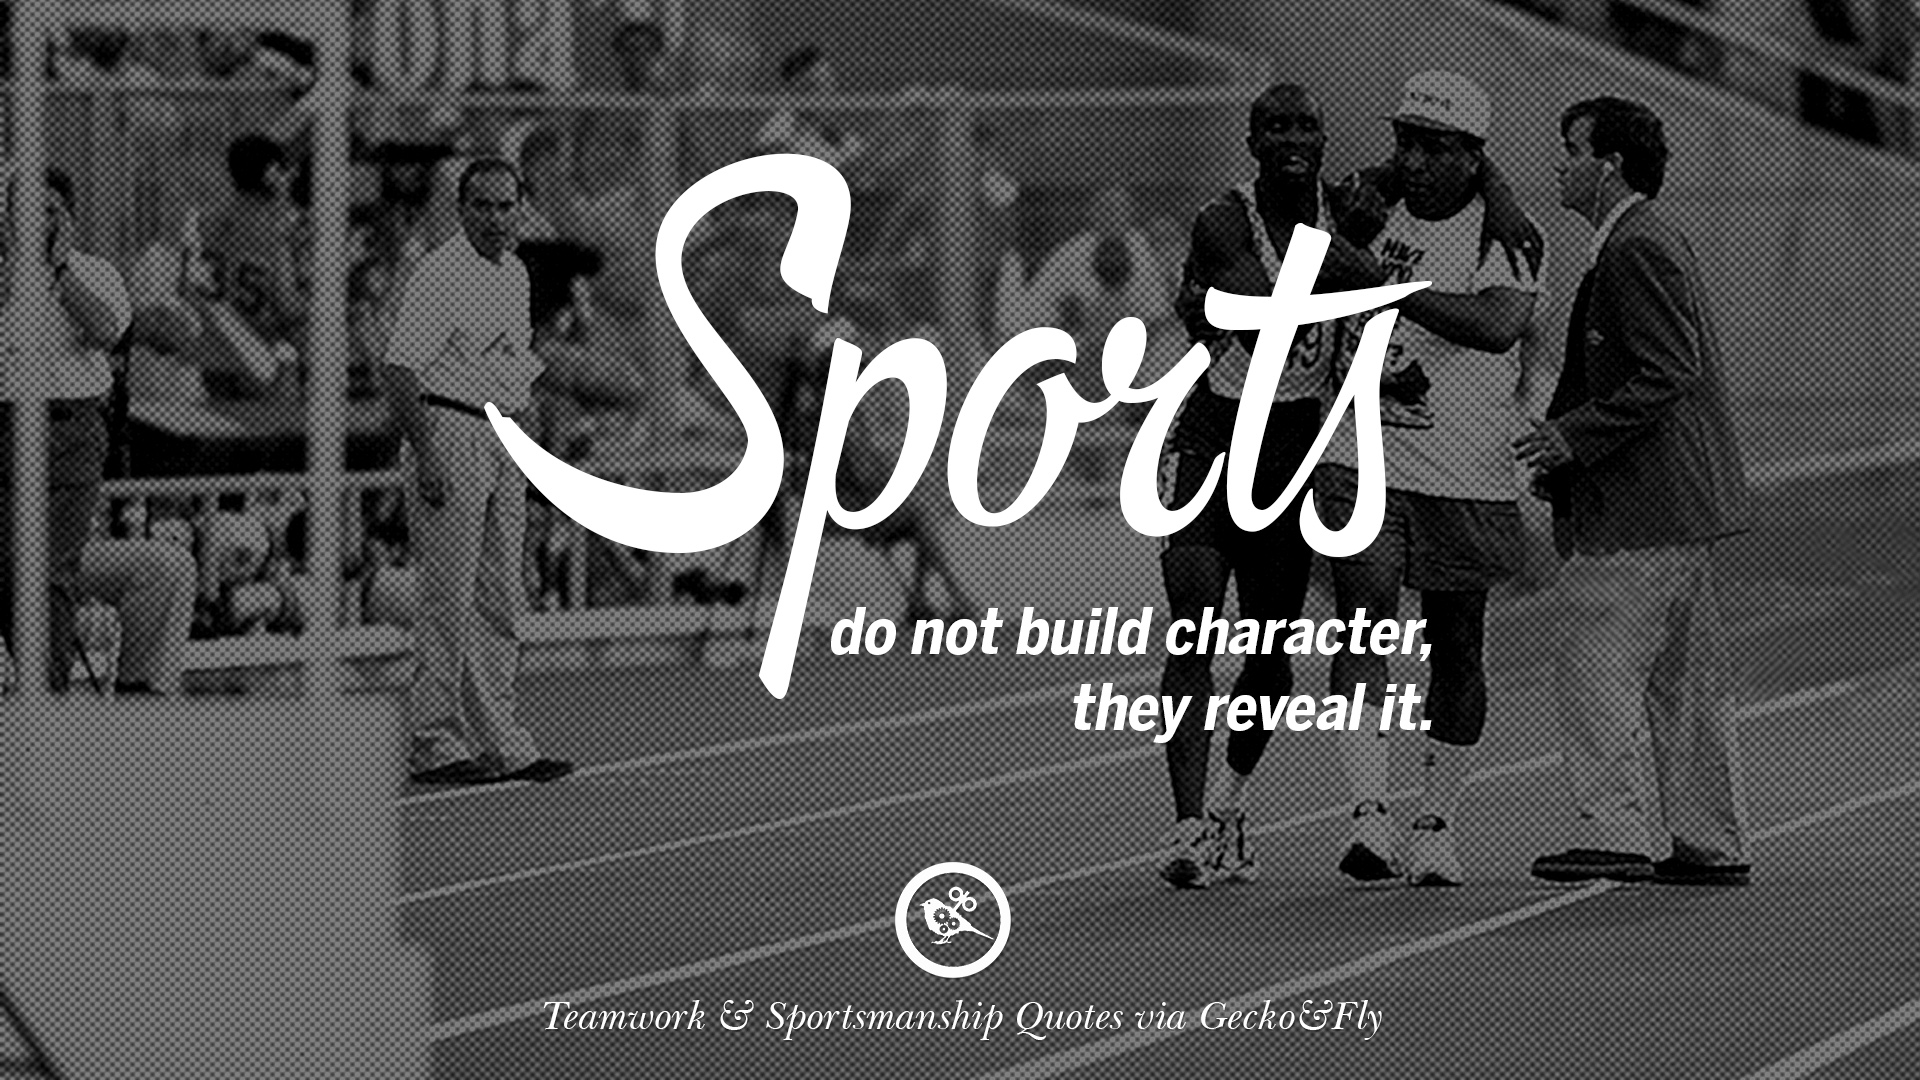 quotes sports teamwork sportsmanship character build inspirational team football soccer baseball motivational basketball accept trying reveal american hockey rugby saying